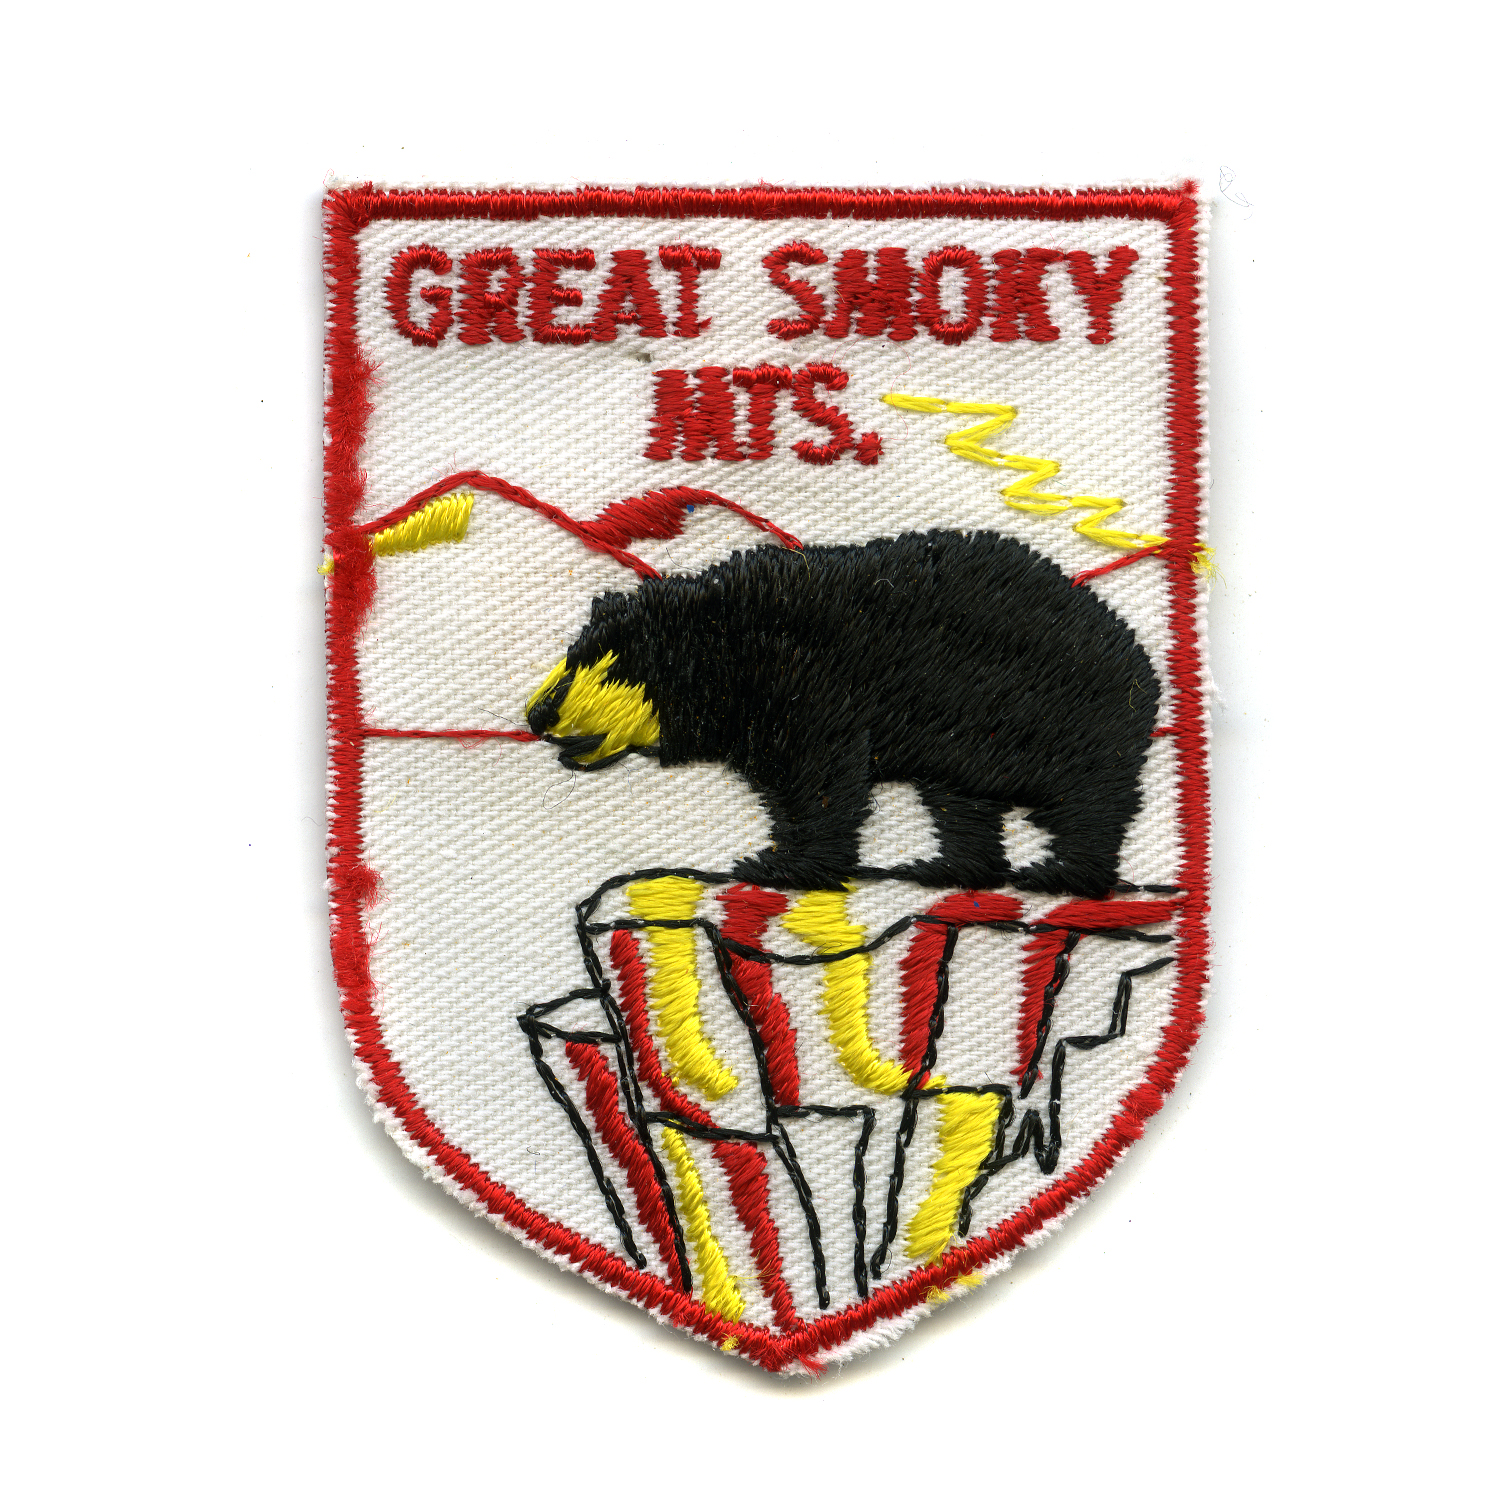 nps_patch_project_great_smoky_mountain_national_park_patch_1.jpg